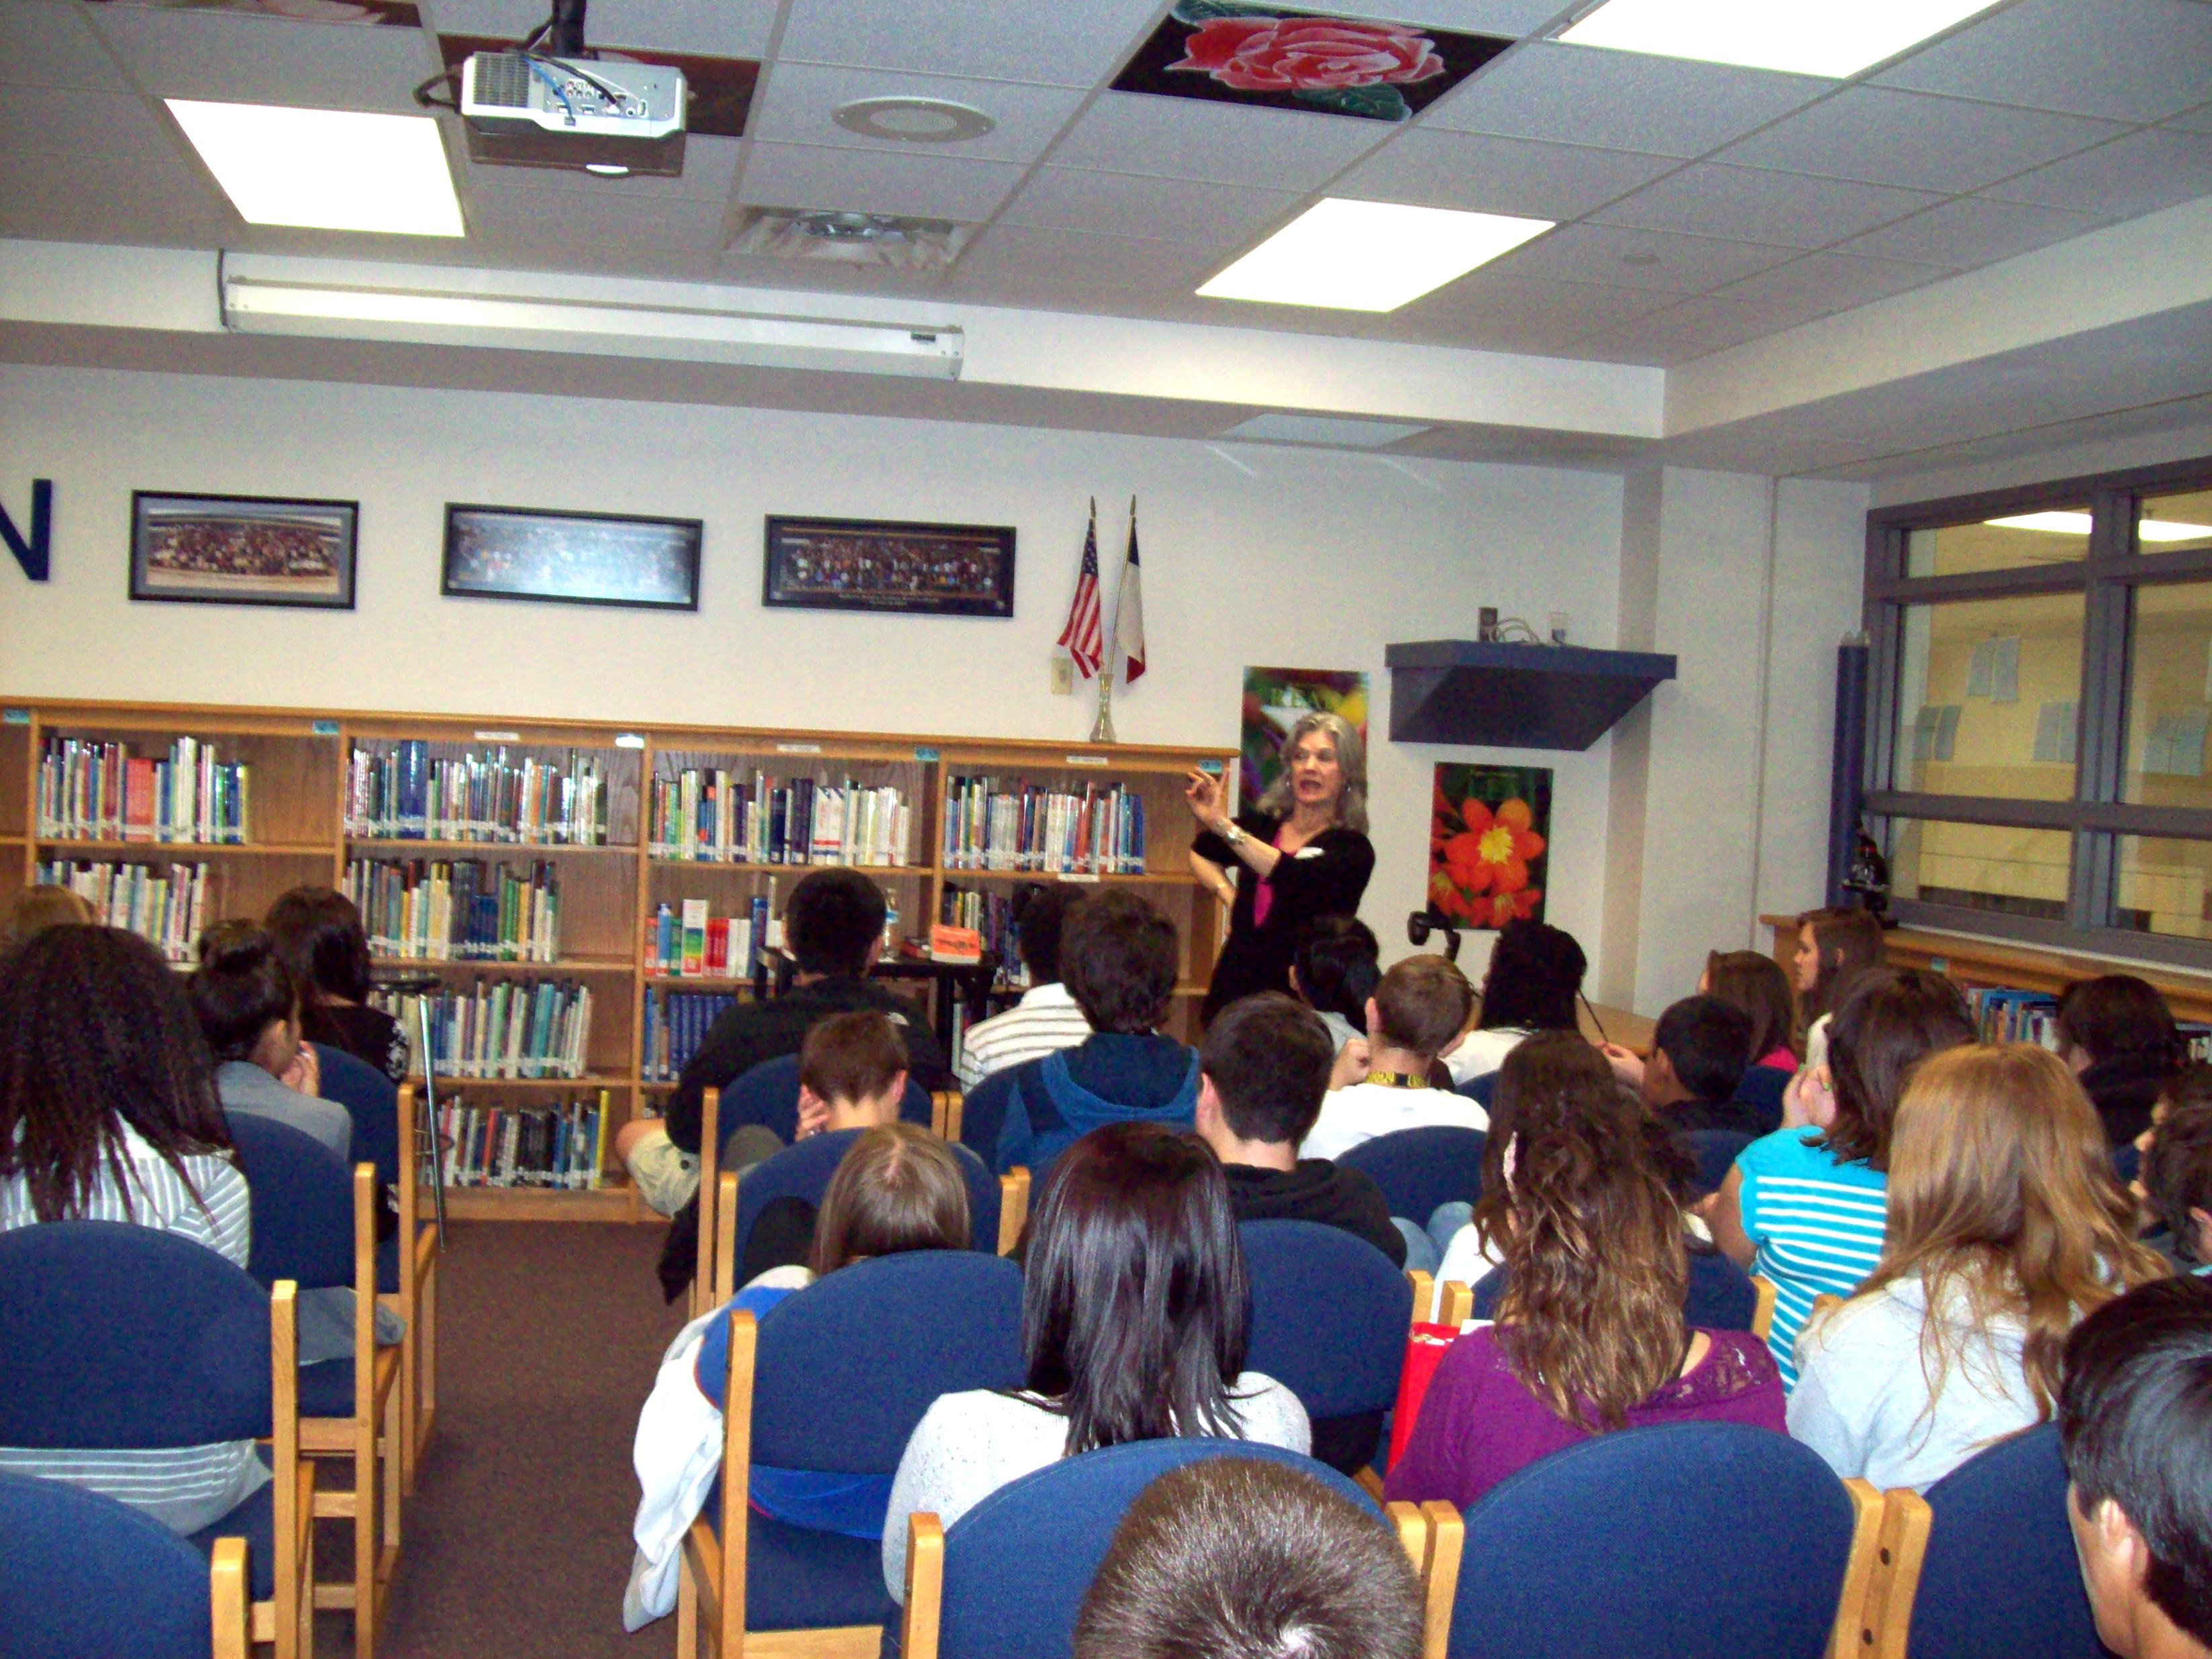 Here I am telling stories to the 7th graders. This is part of the Tejas Tellers in the Schools program.